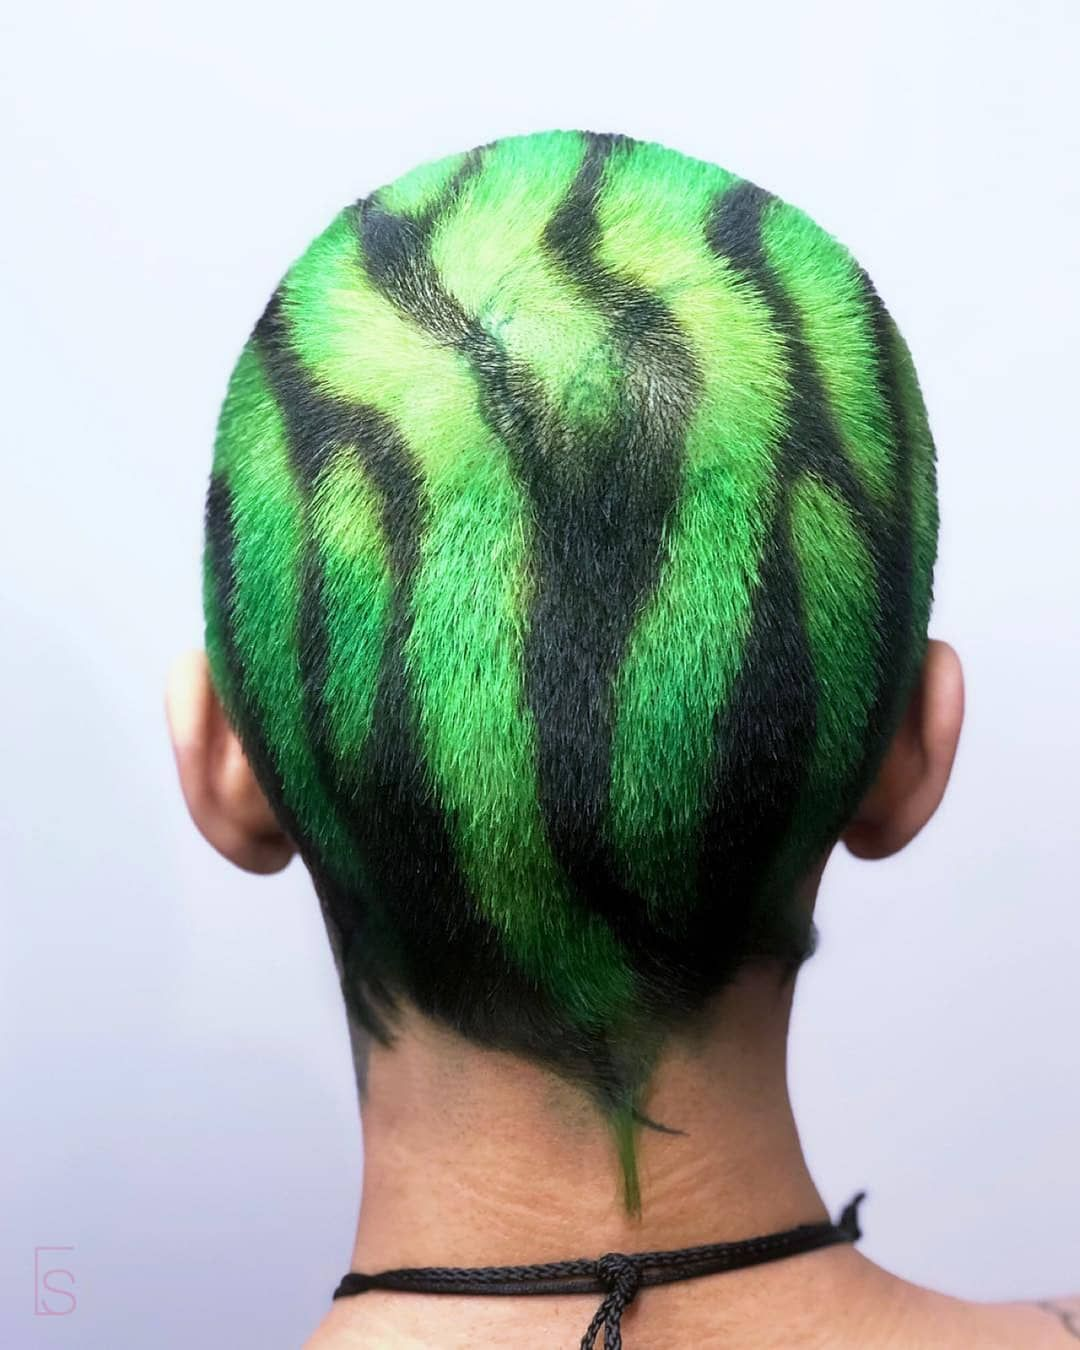 Salon Republic On Instagram Neon Green Zebra Bringing The Heat With This One It Really Packs A Punch Me Dyed Hair Men Green Hair Men Hair Color